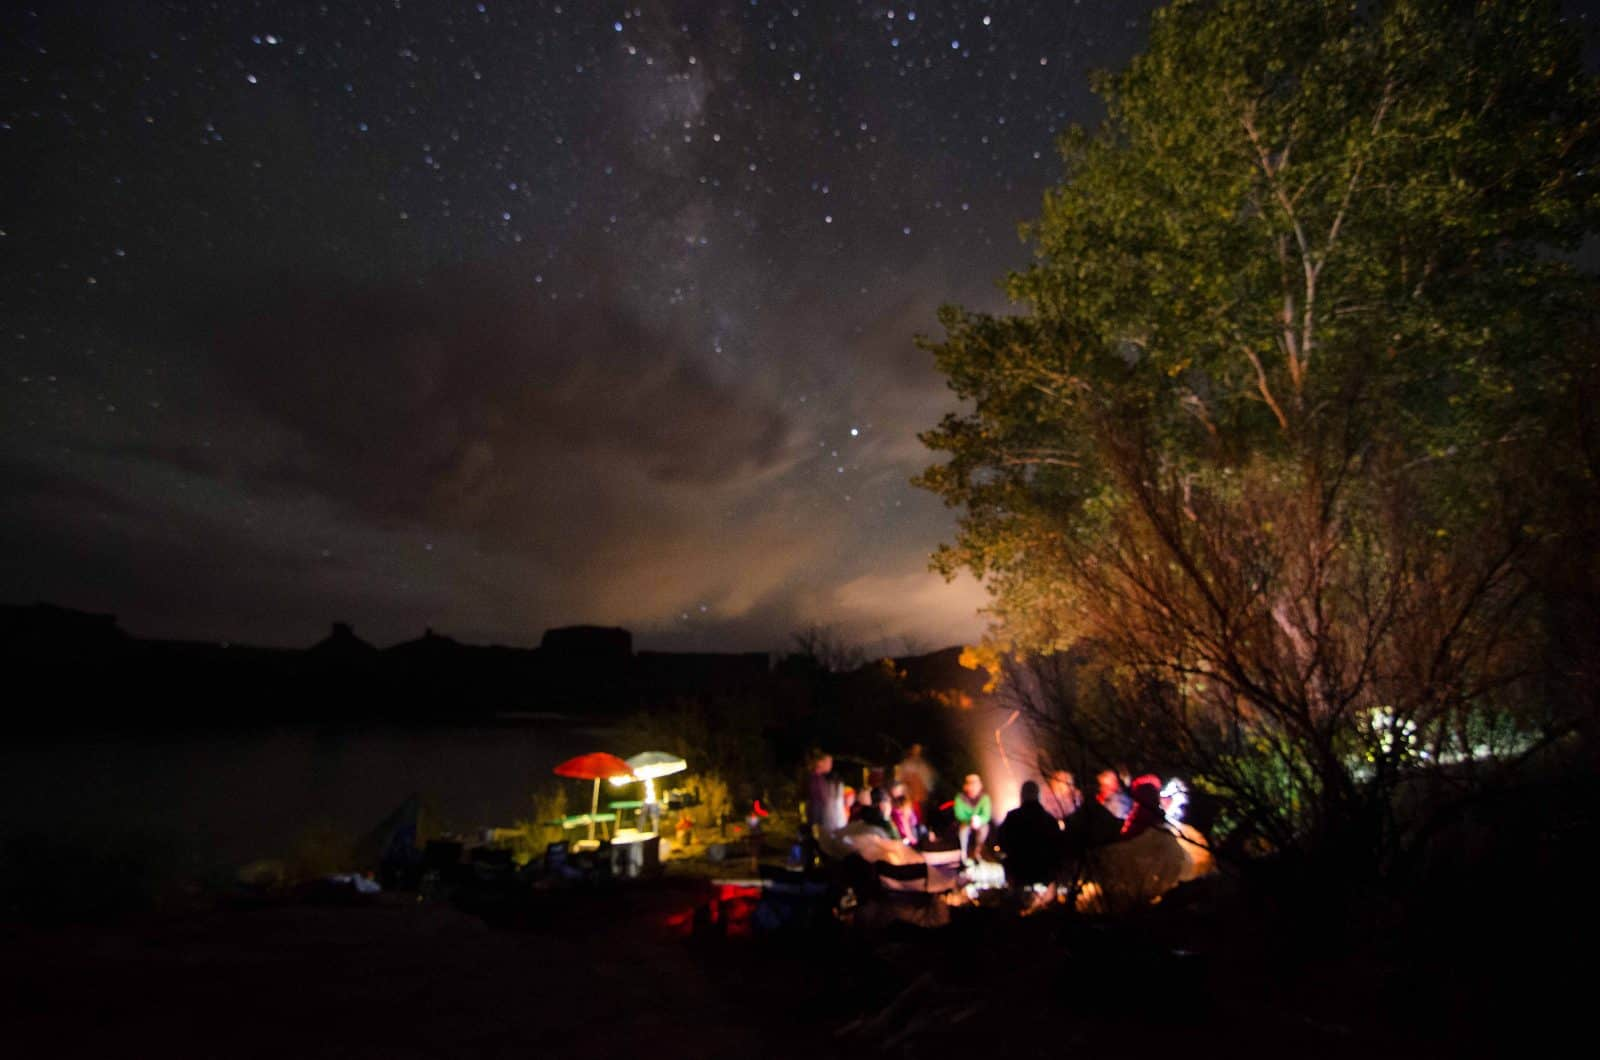 Did you know Canyonlands National Park was designated as a Gold-Tier International Dark Sky Park?